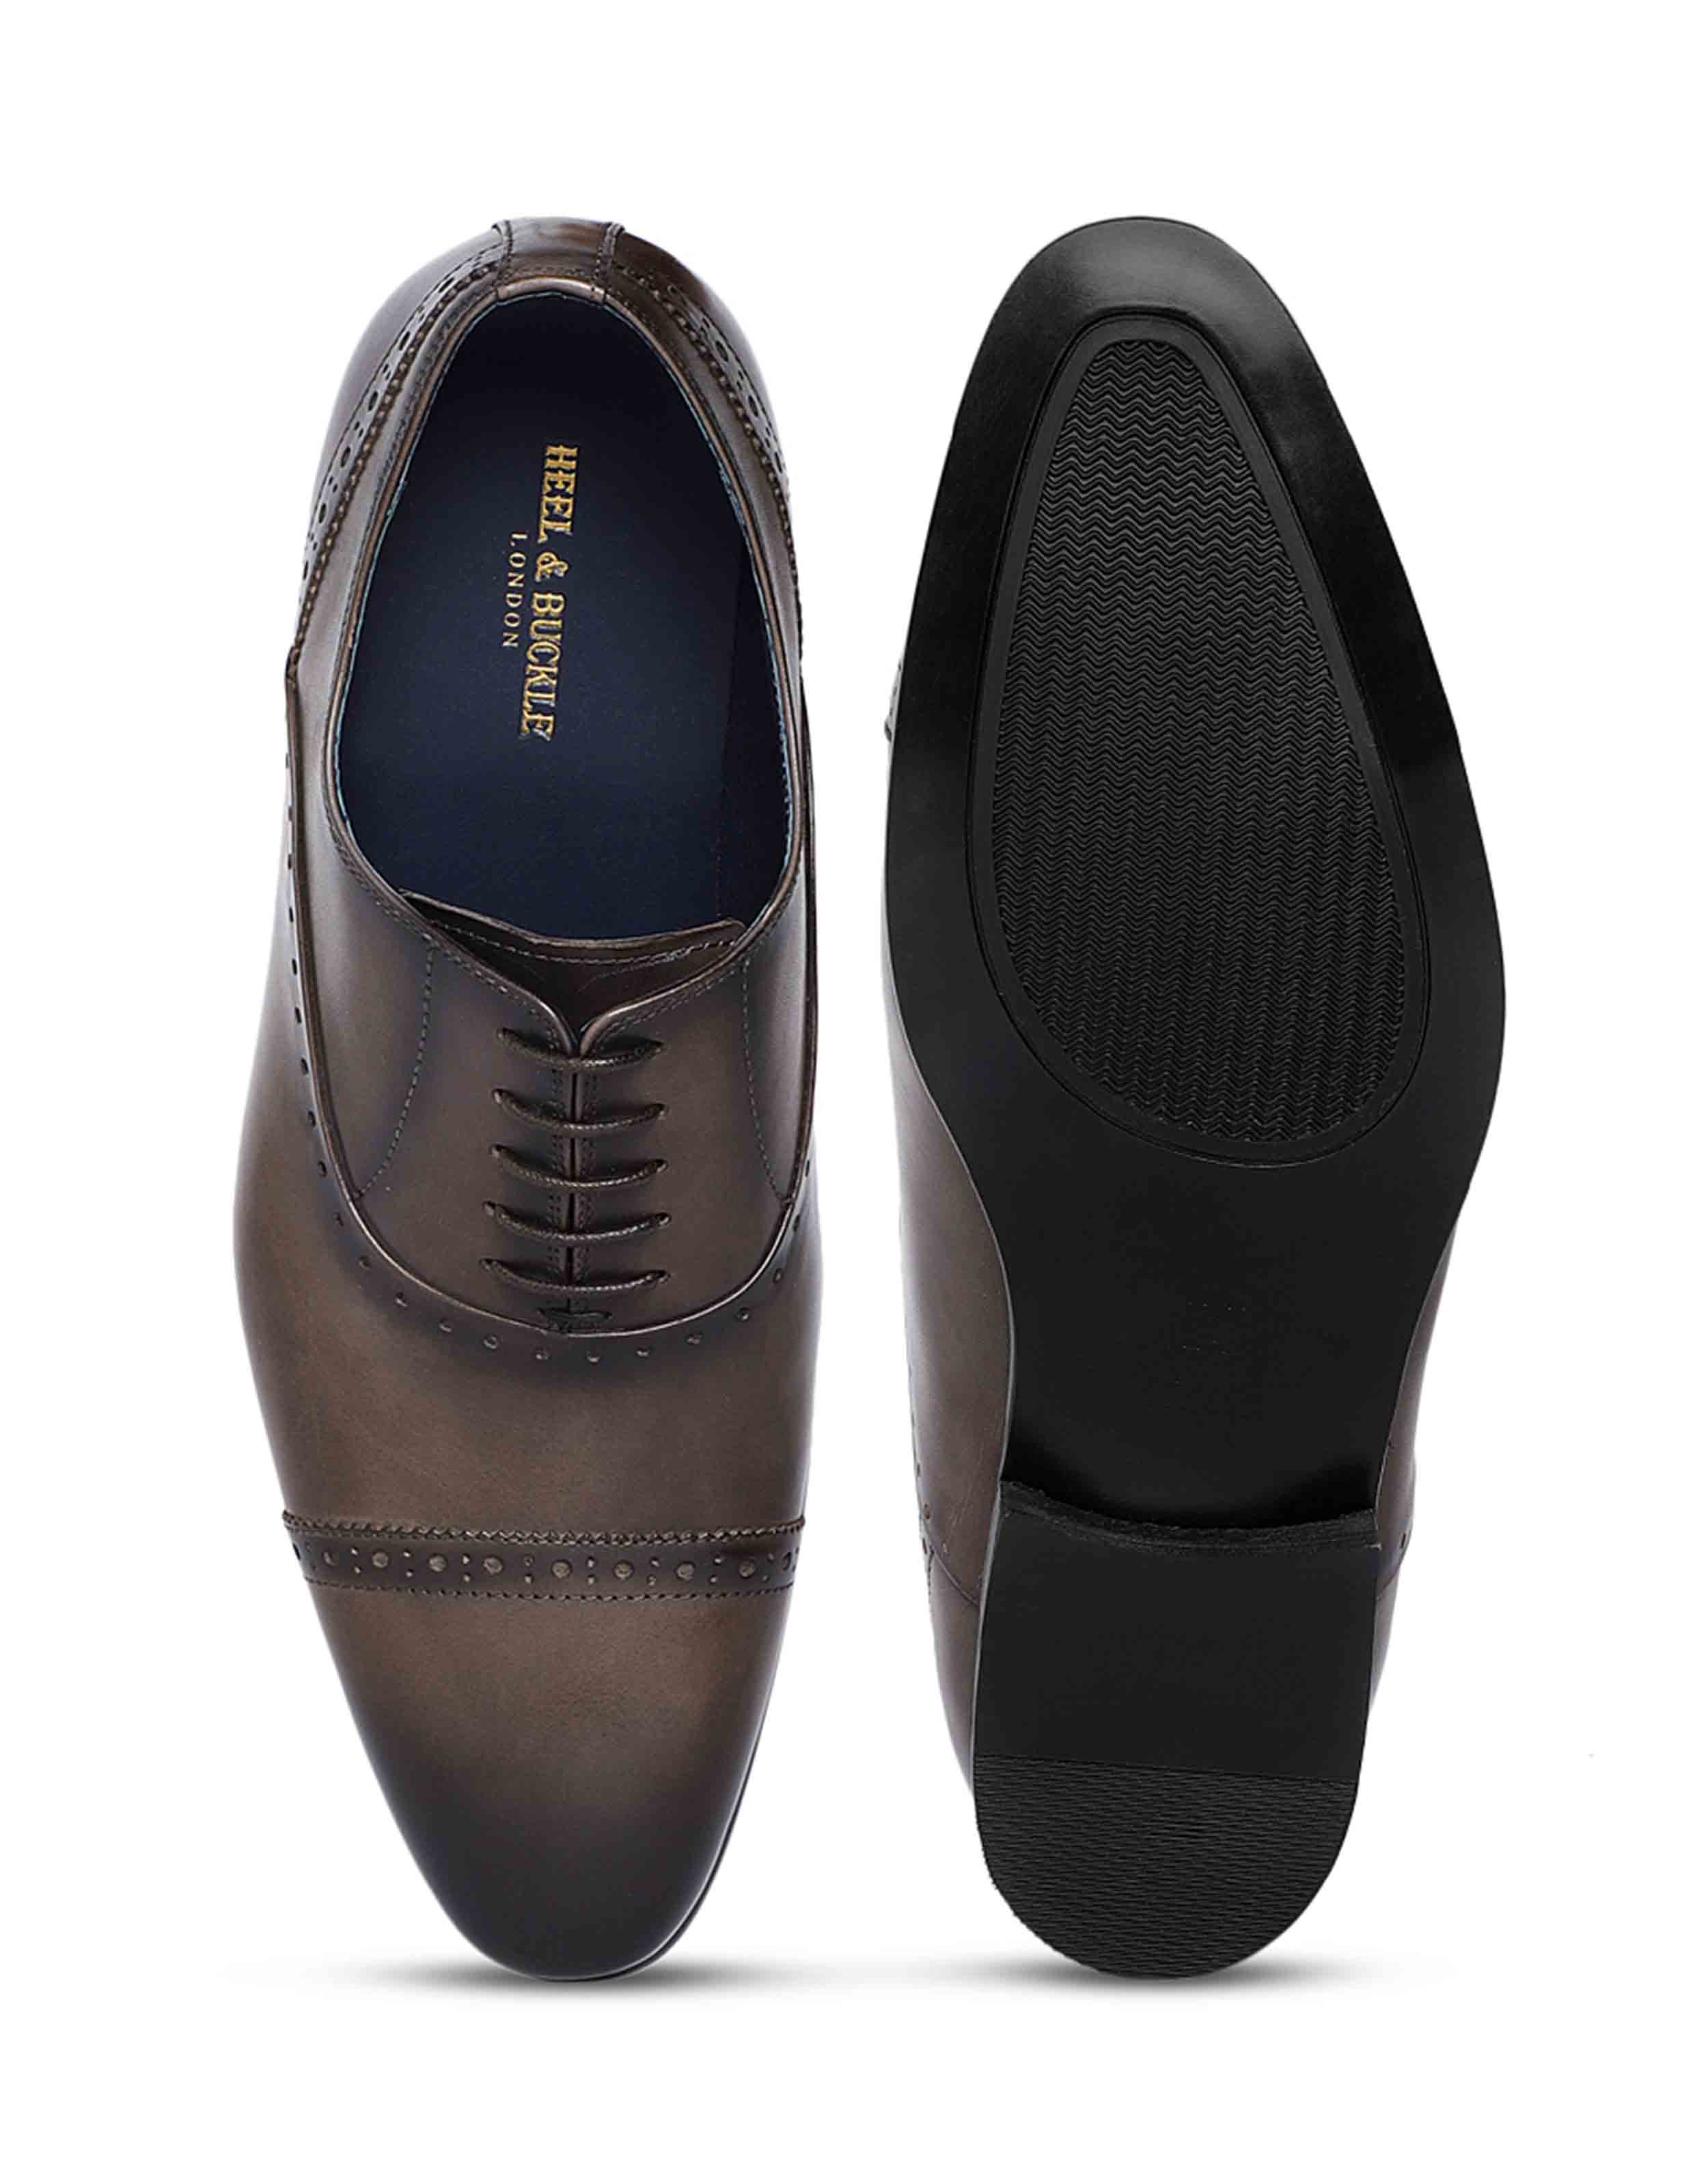 Grey medallion wingtip oxfords4